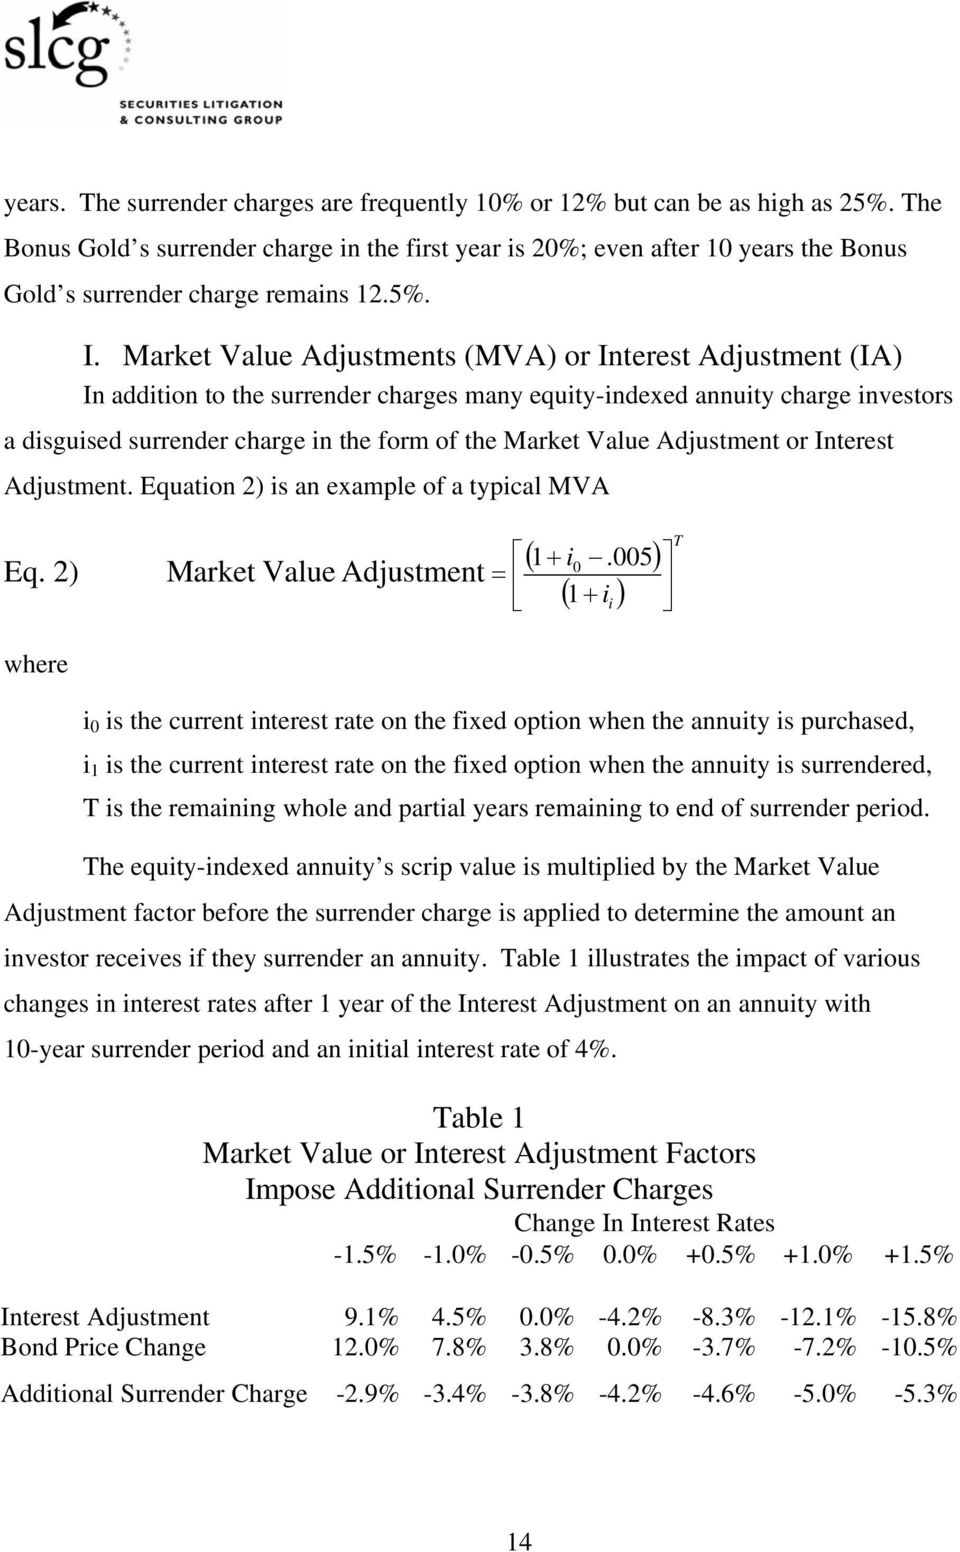 Market Value Adjustments (MVA) or Interest Adjustment (IA) In addition to the surrender charges many equity-indexed annuity charge investors a disguised surrender charge in the form of the Market